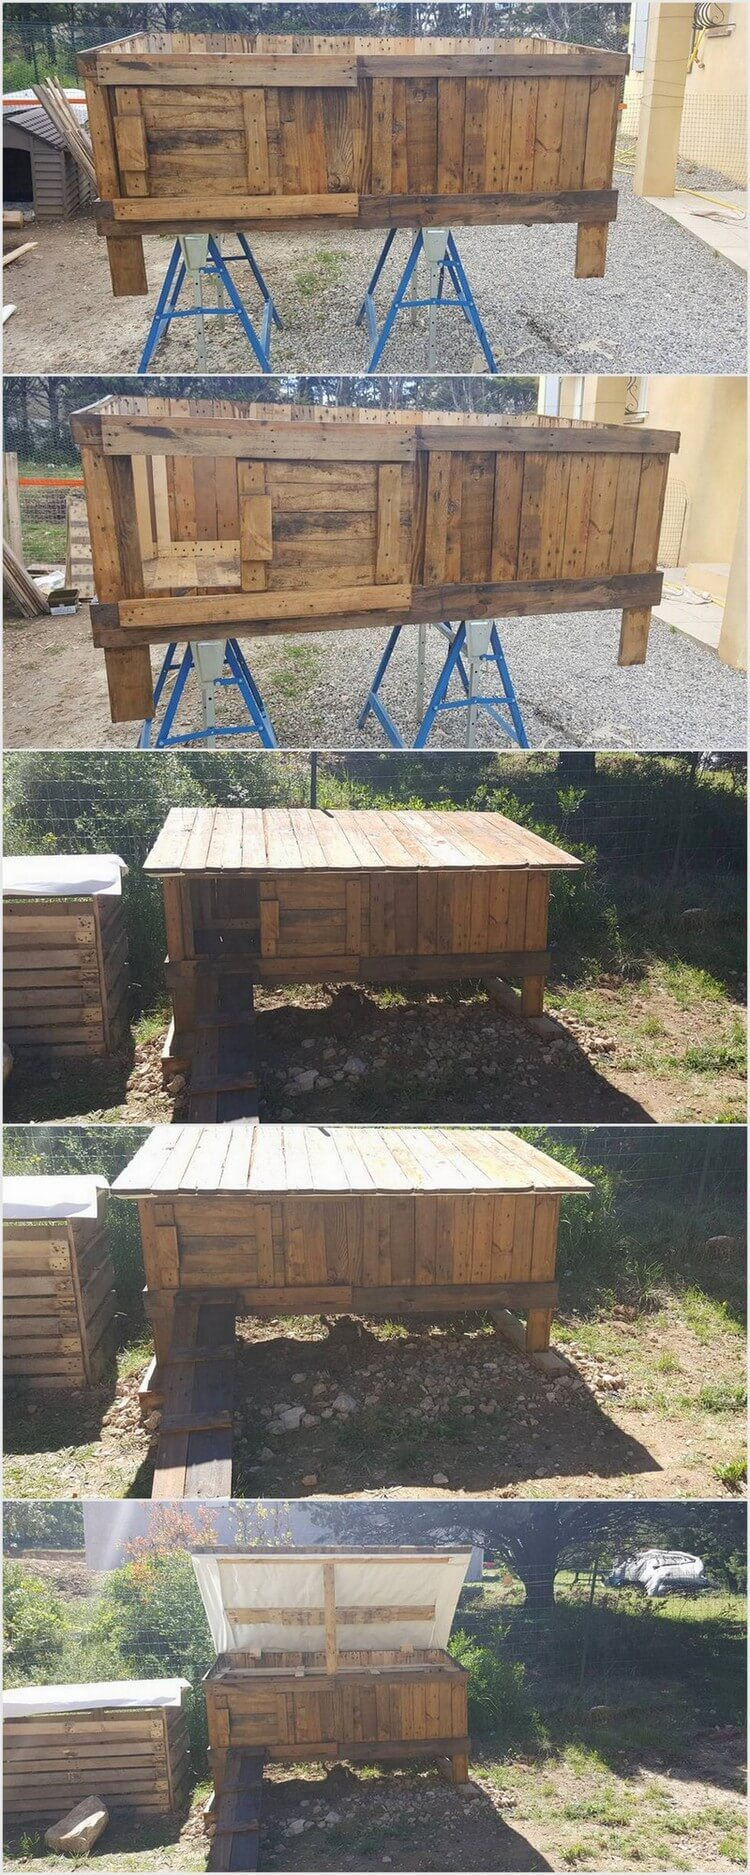 Some Easy Pallet Projects For The Beginners - Sensod  Easy Wood Projects From Pallets